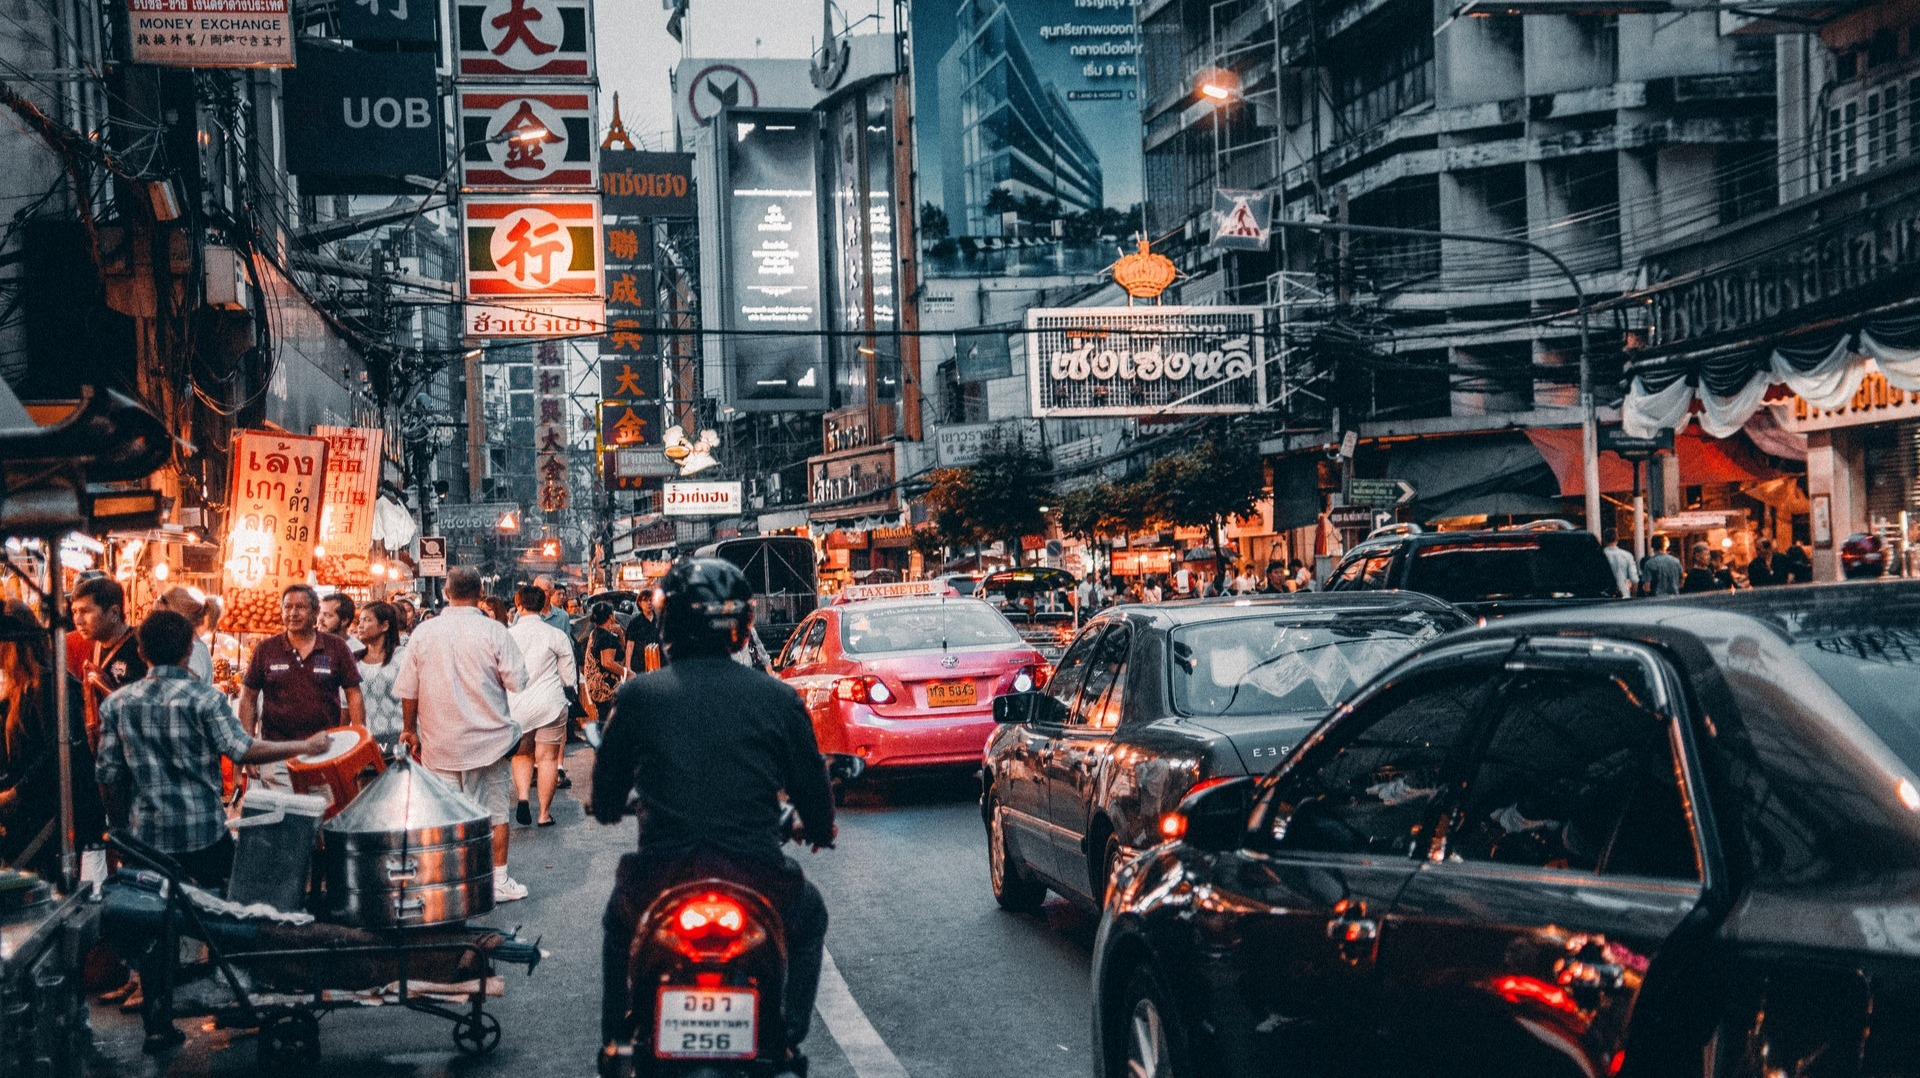 https://www.pexels.com/photo/crowded-street-with-cars-passing-by-708764/